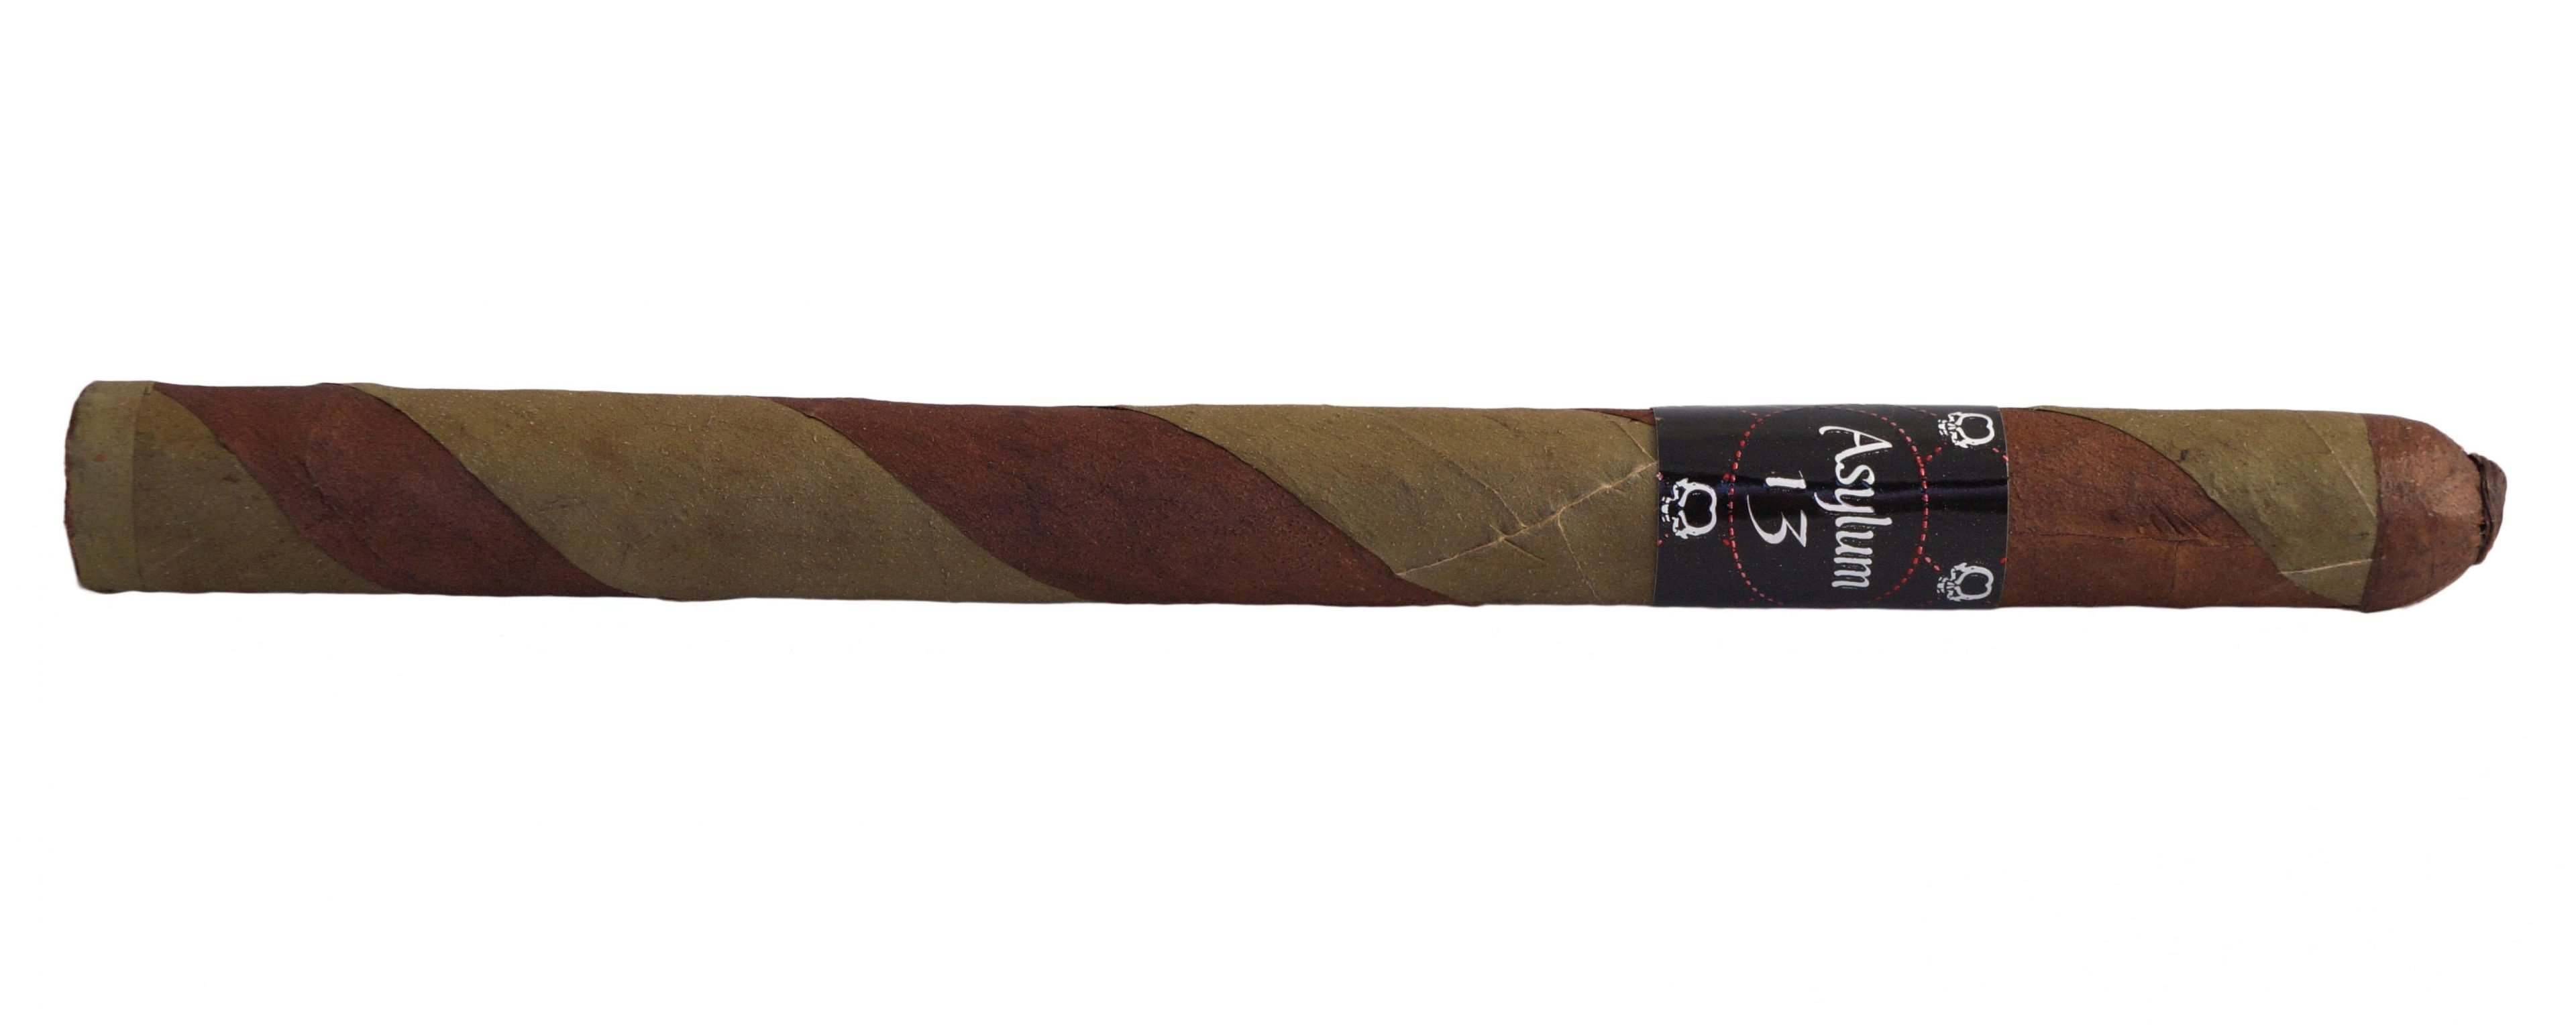 Blind Cigar Review: Asylum 13 | Ogre Lancero